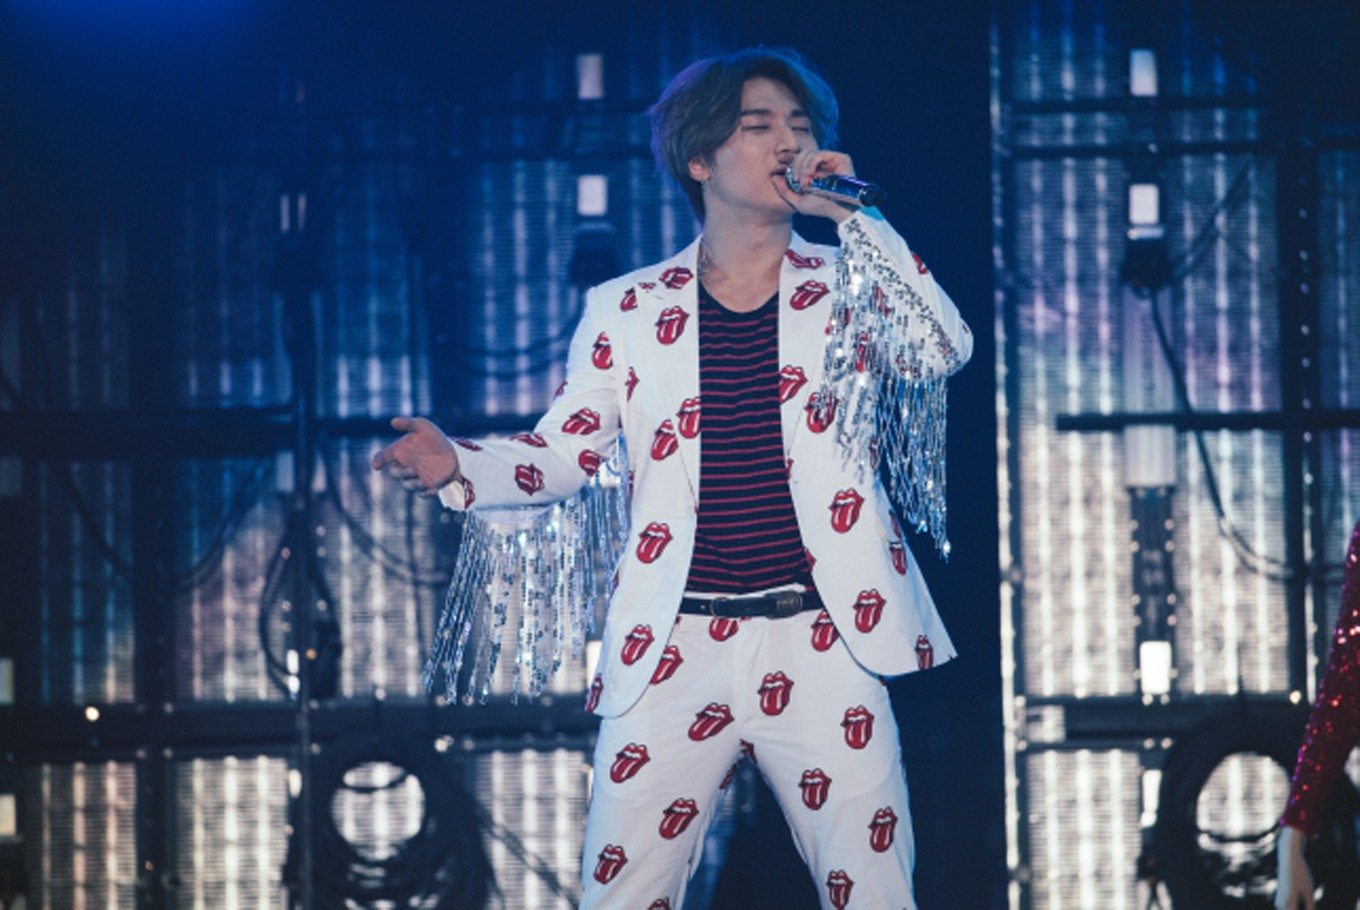 Big Bang member Daesung to start military duty on March 13